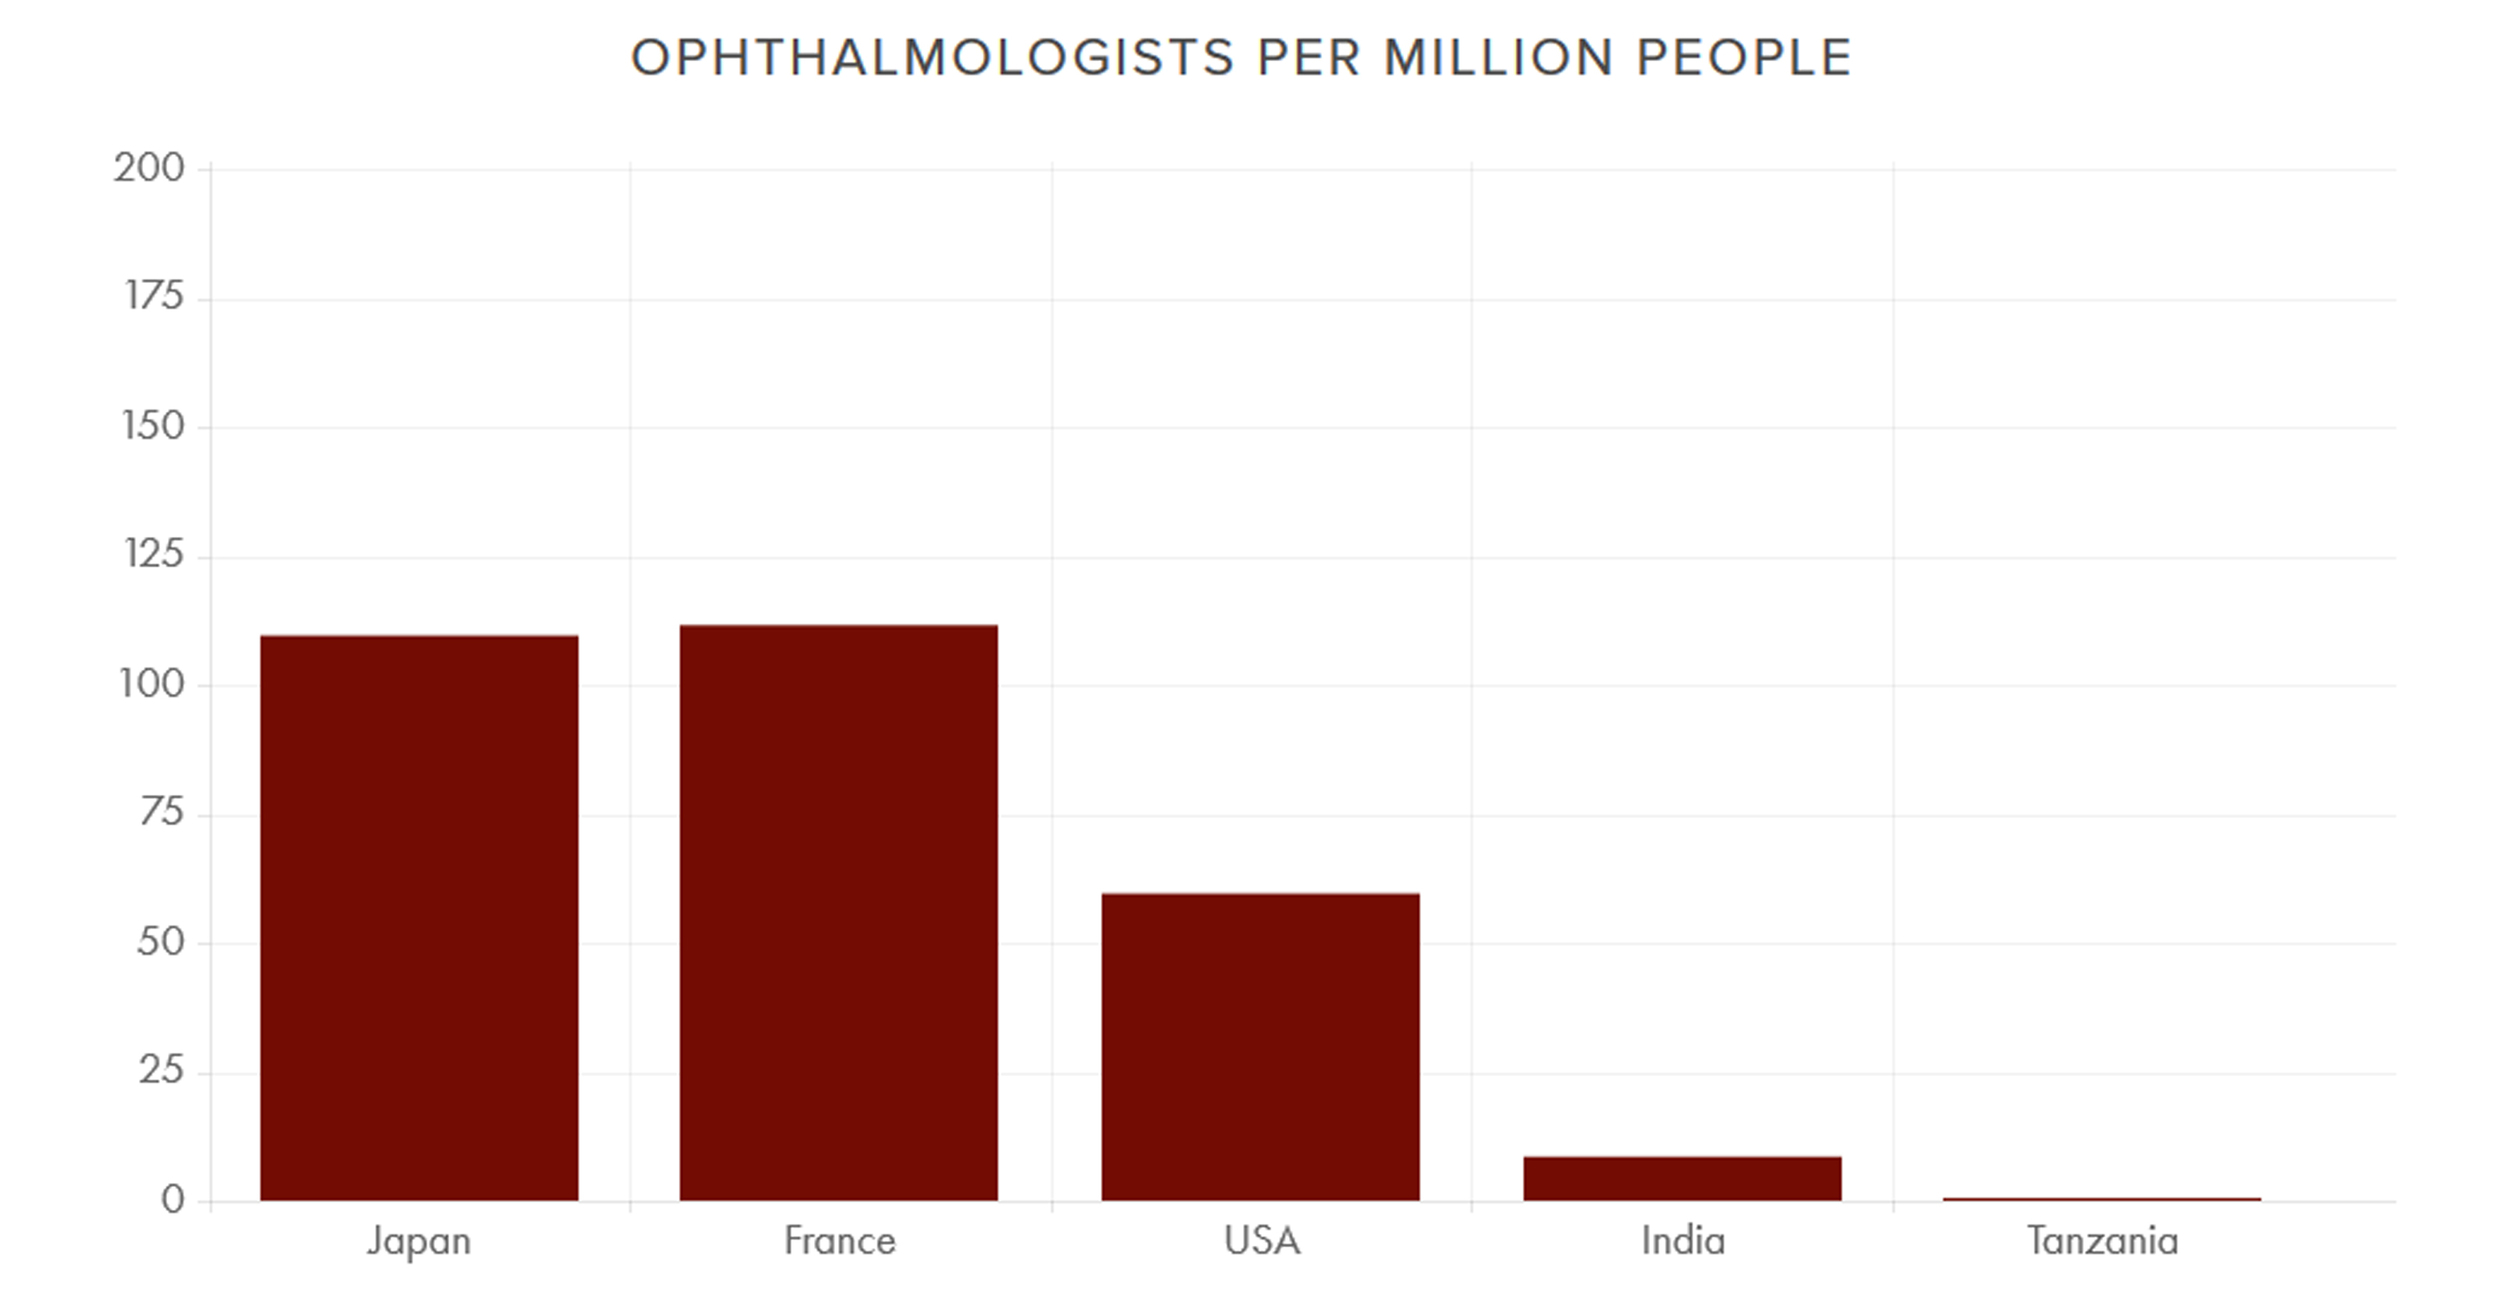 A major factor   in high blindness rates in developing countries is a relative lack of eye surgeons. In rich countries such as Japan, France, and the U.S., the number of ophthalmologists per million people ranges from 60 to over 100.   In India, the number is 9. In Tanzania and other countries in Sub-Saharan Africa, it is 1.